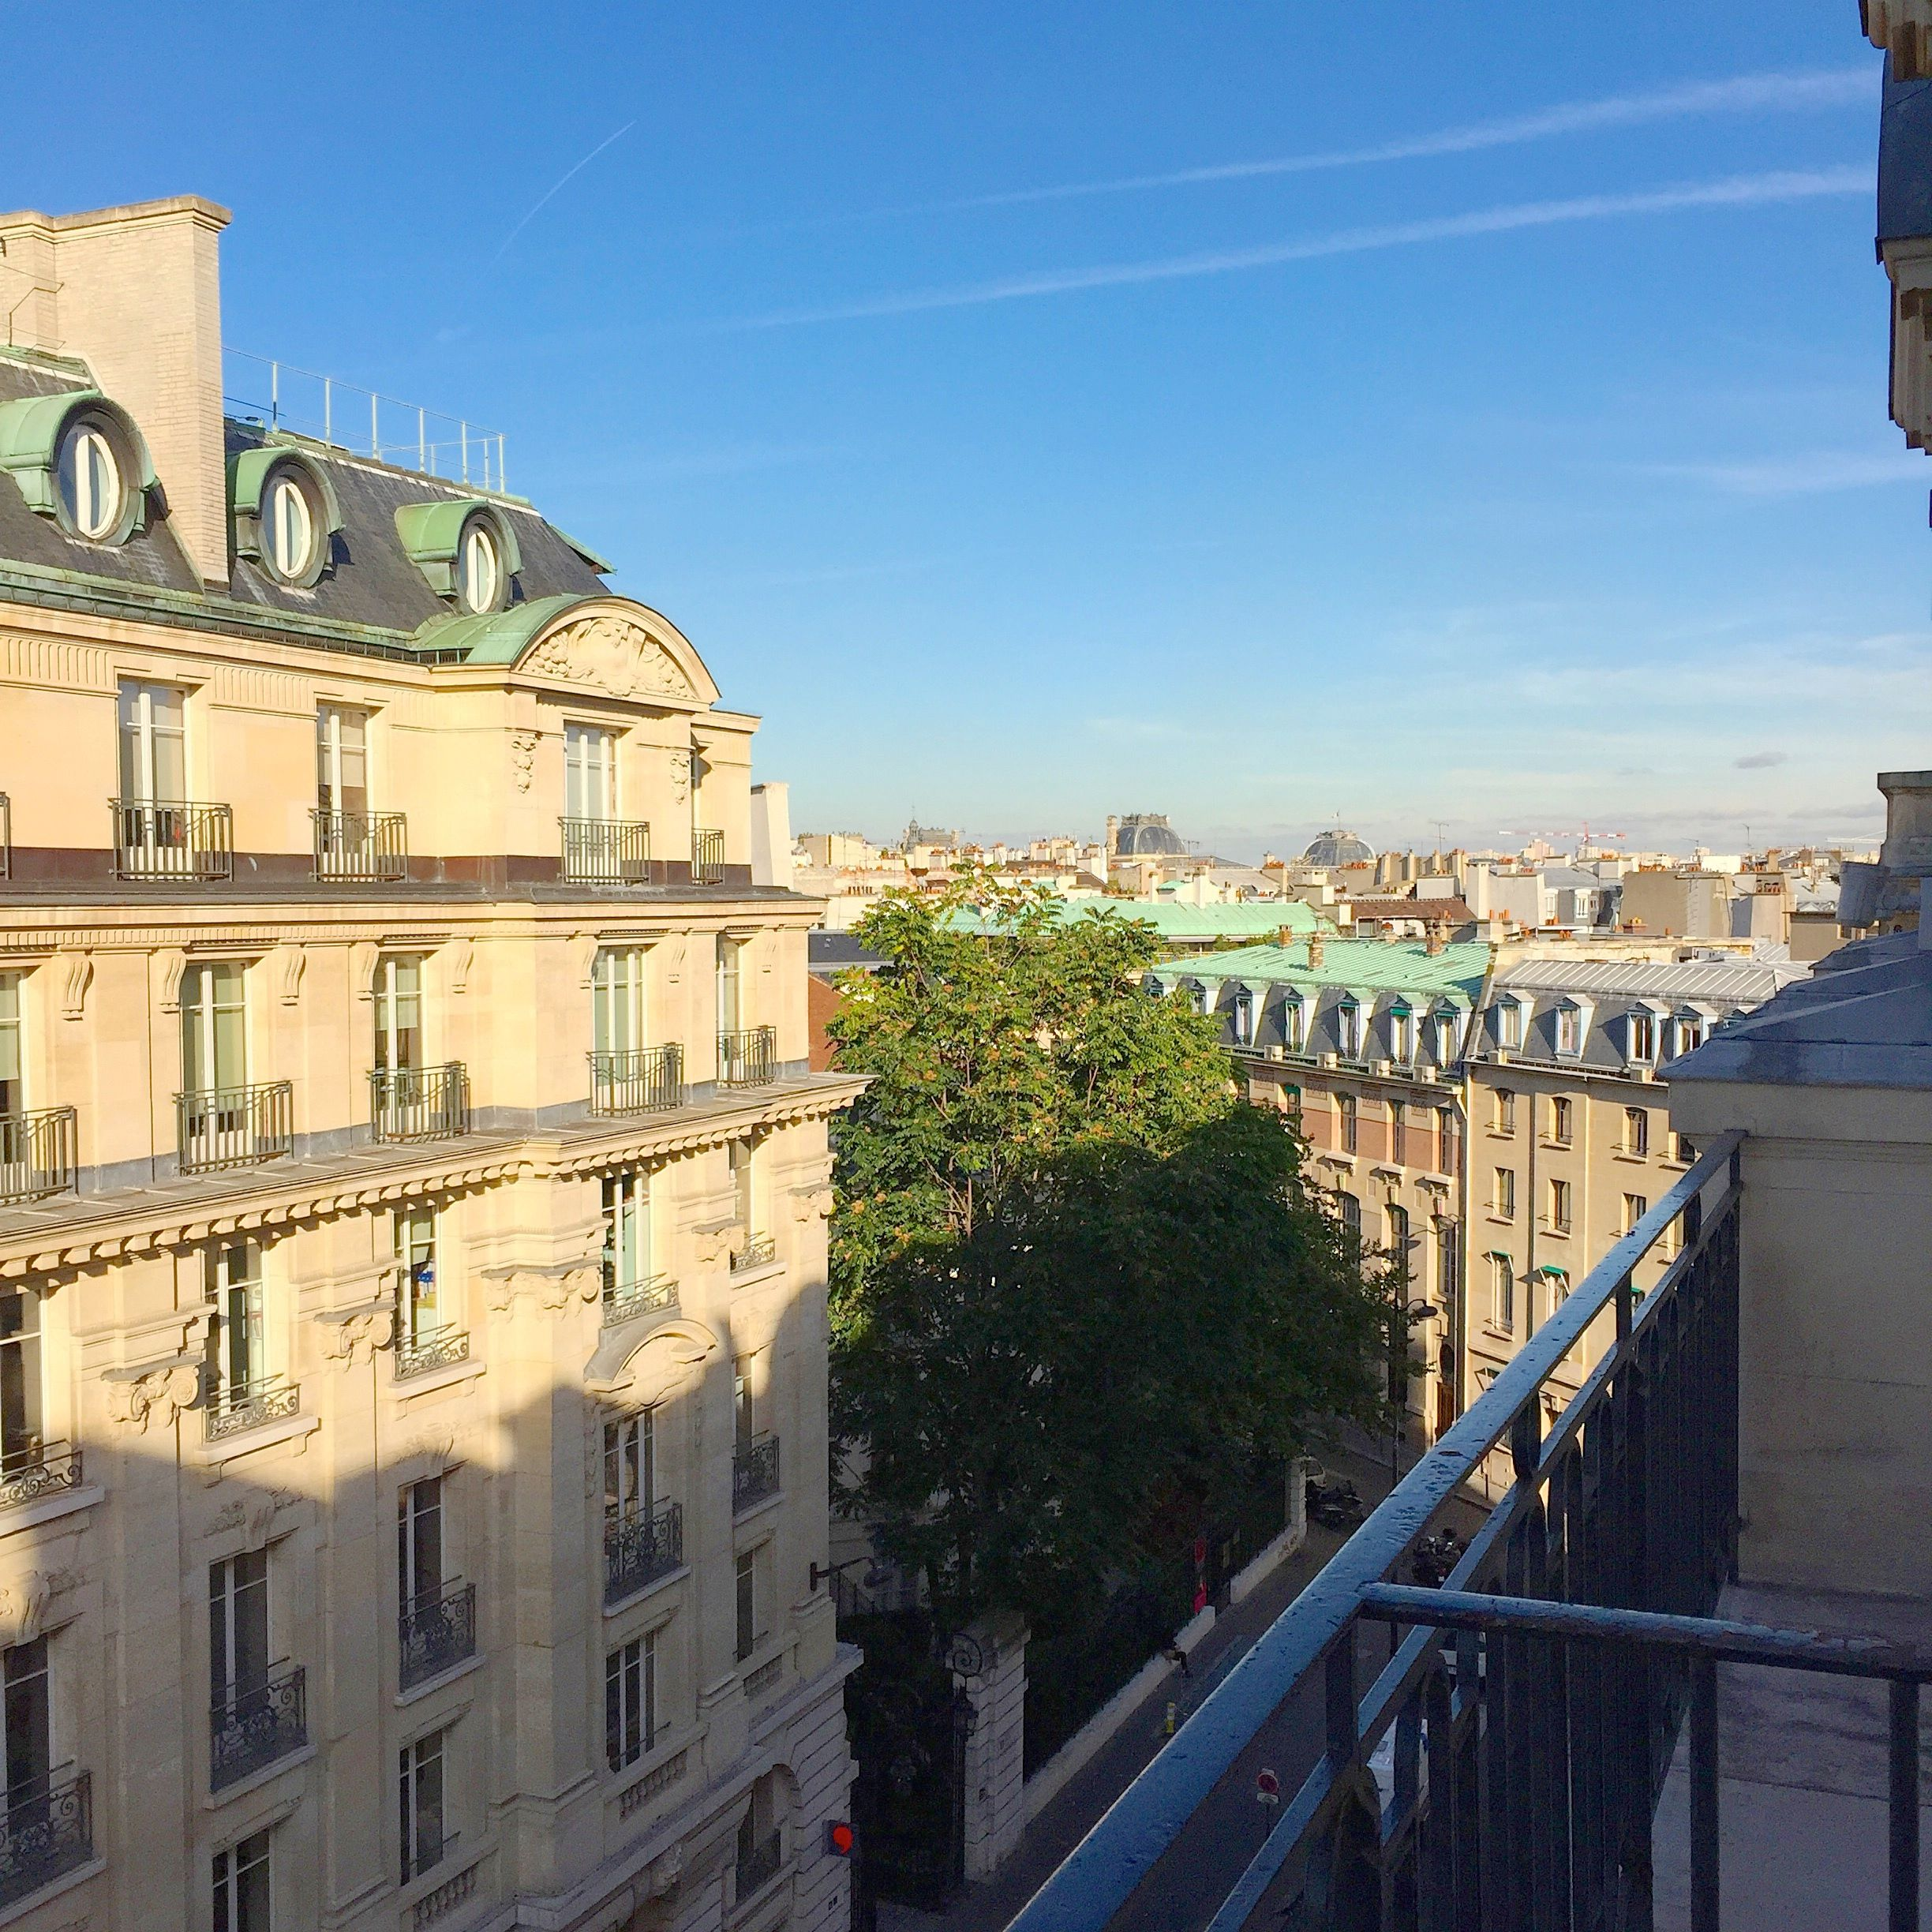 Hotel Montalembert, Paris, balcony view, VIA From the Poolside blog on boutique hotels for family holidays